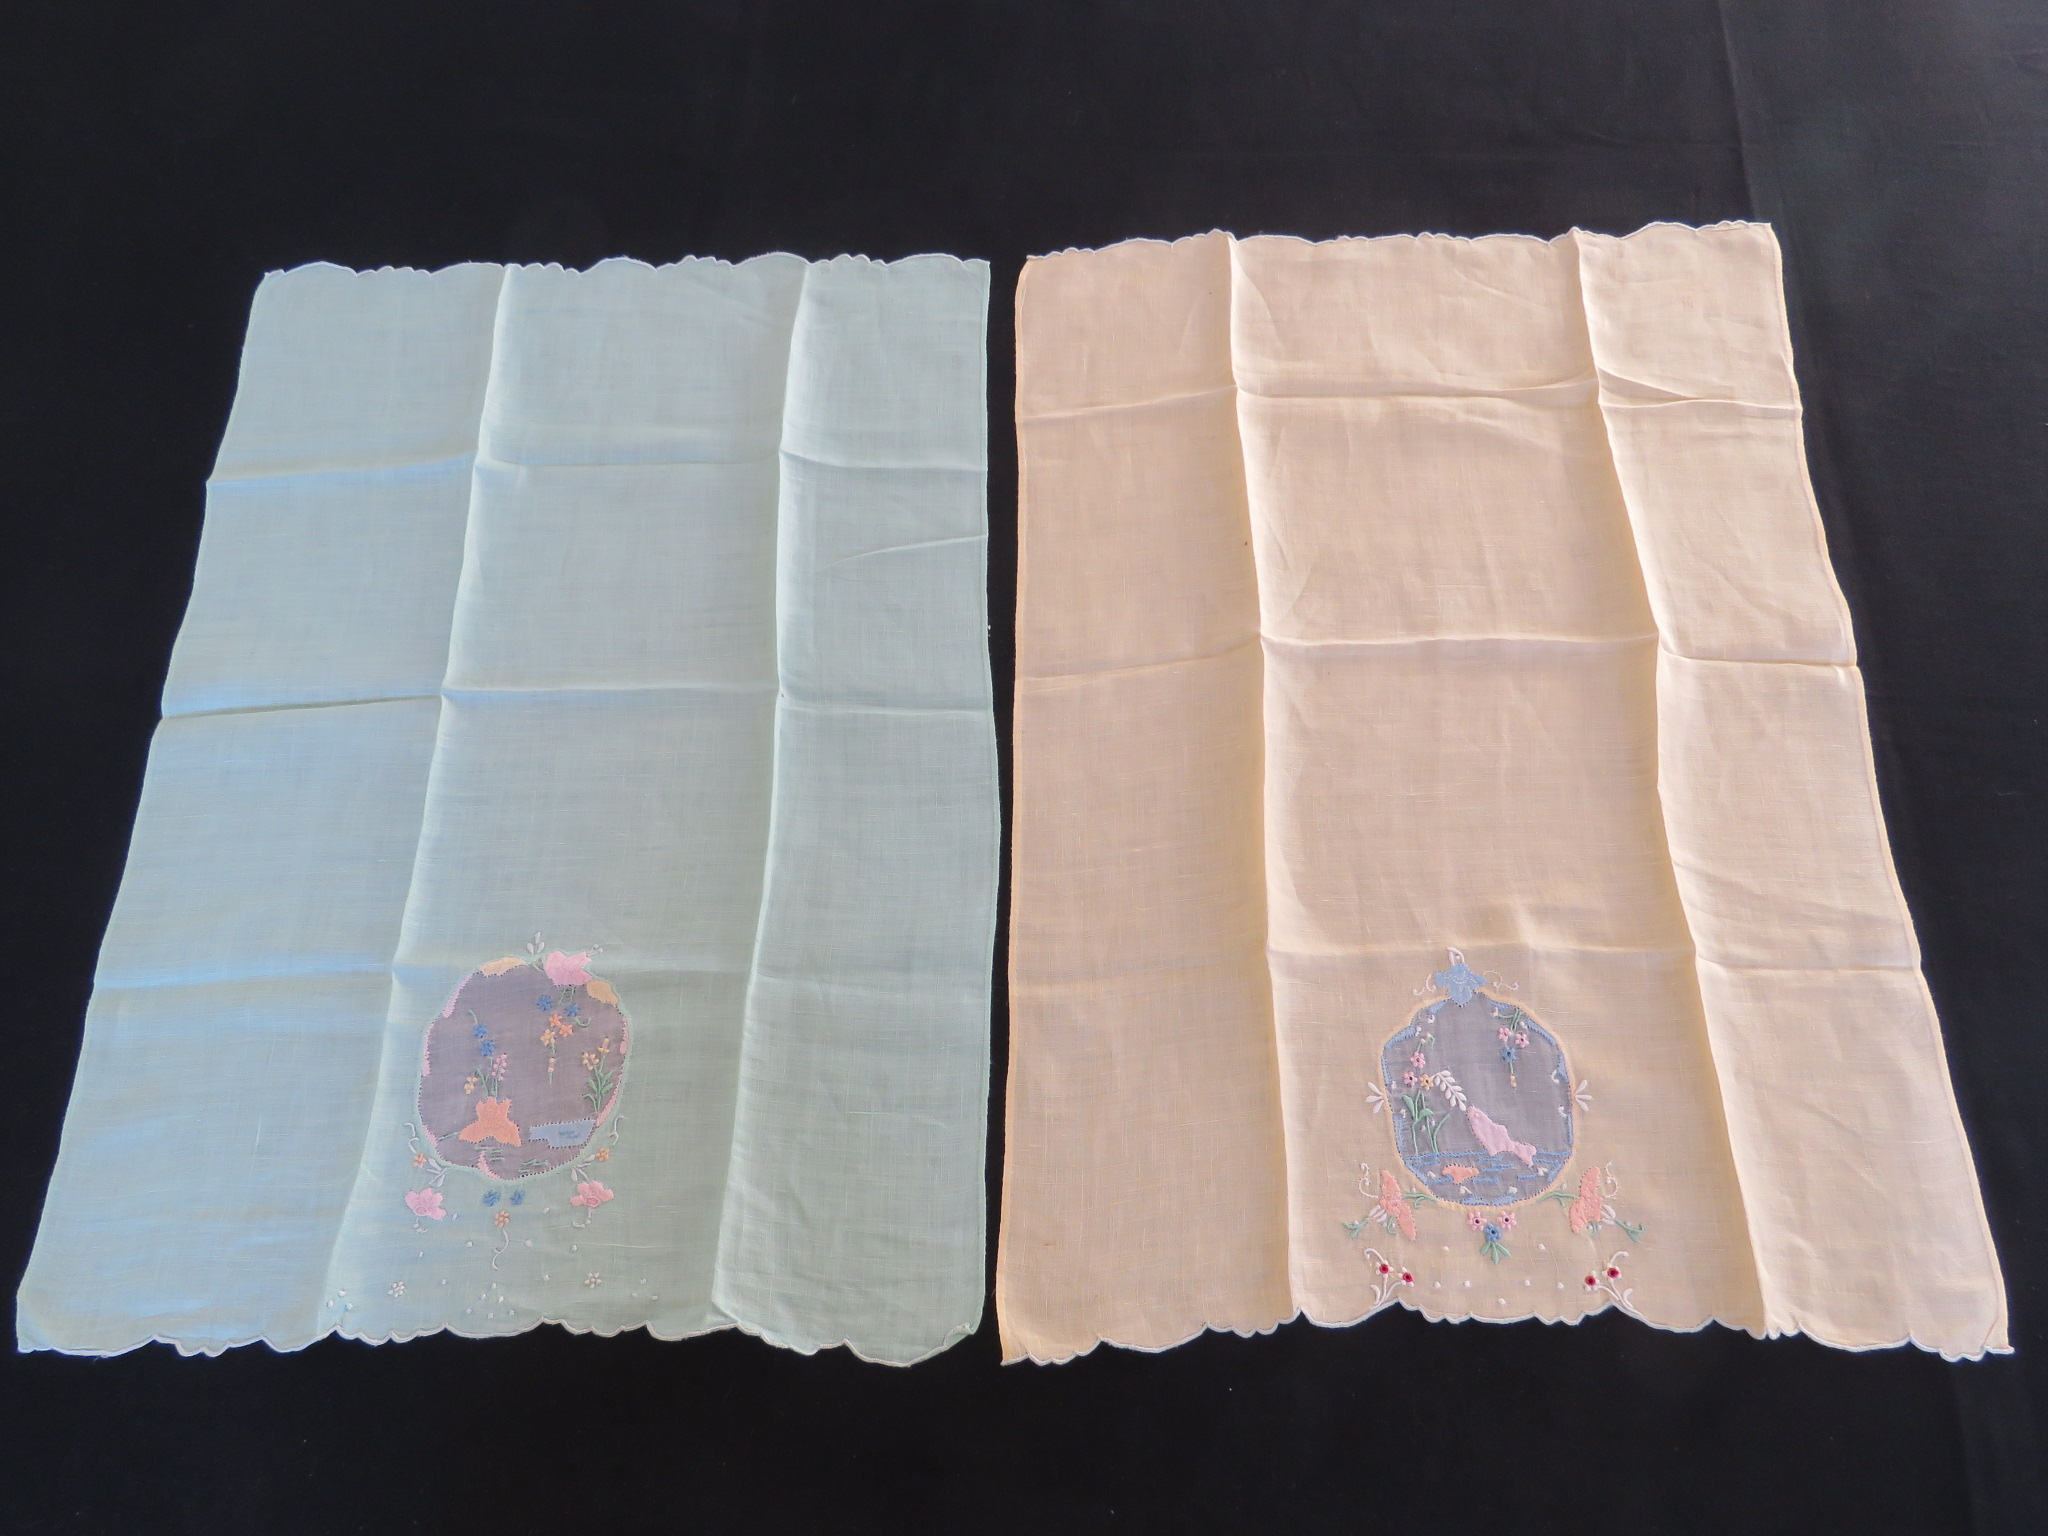 "Vintage Tapestry Panel European Scenic Landscape Table Runner 20"" Square (L&T-484)"